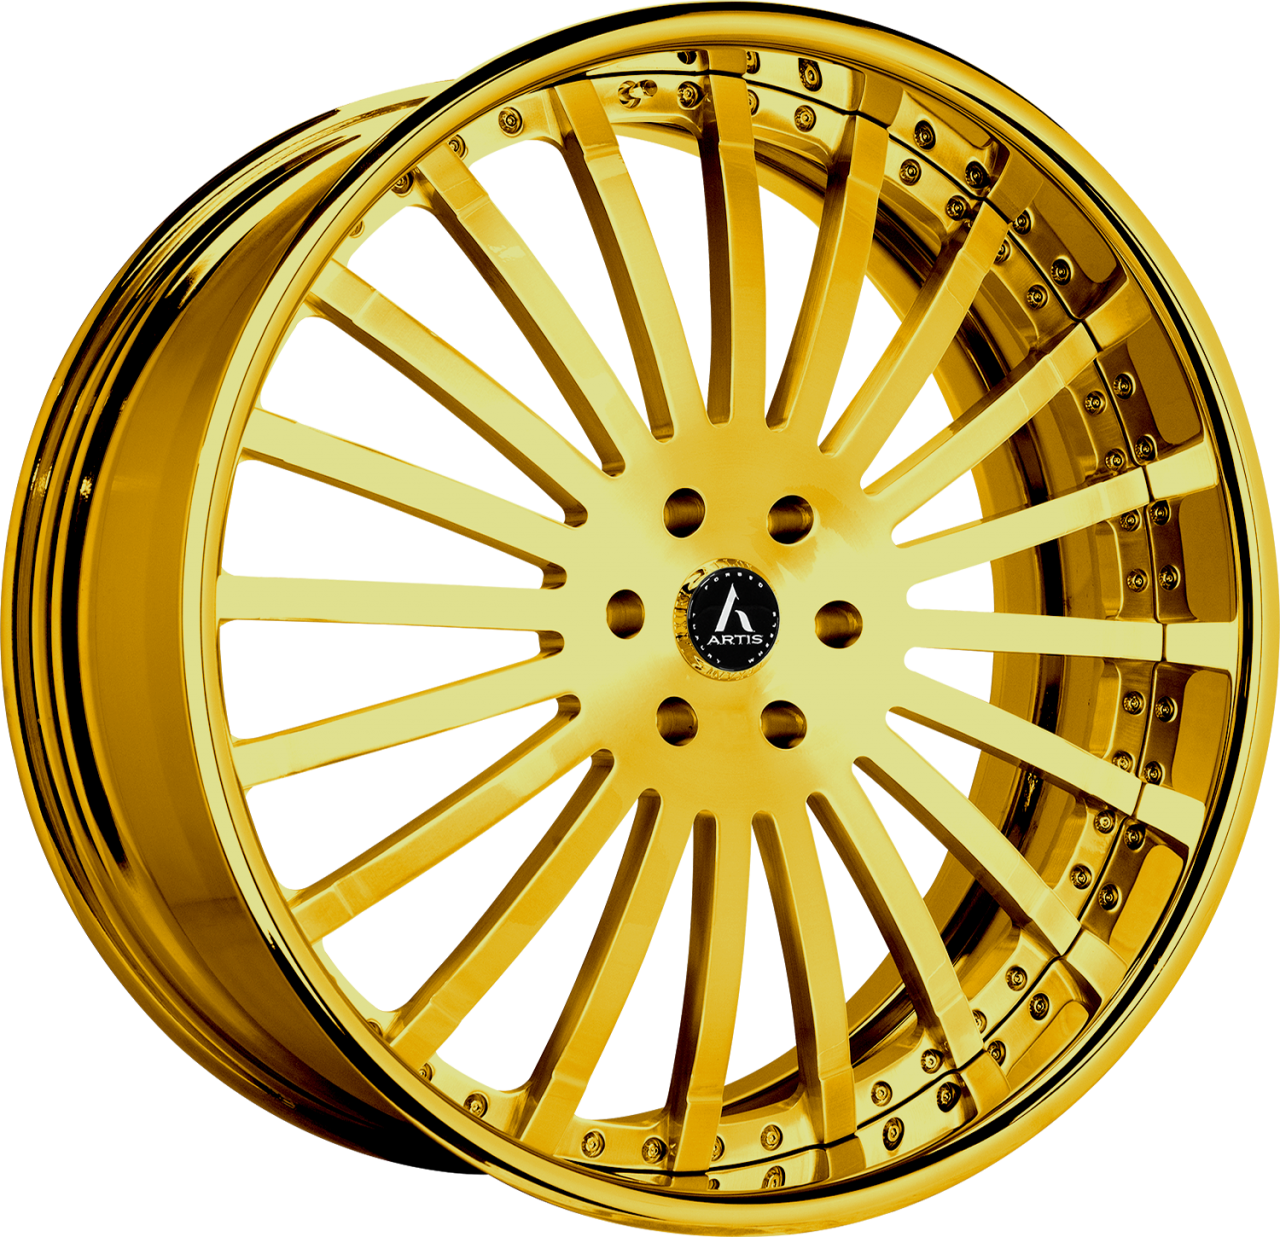 Artis Forged Coronado wheel with Custom Gold finish